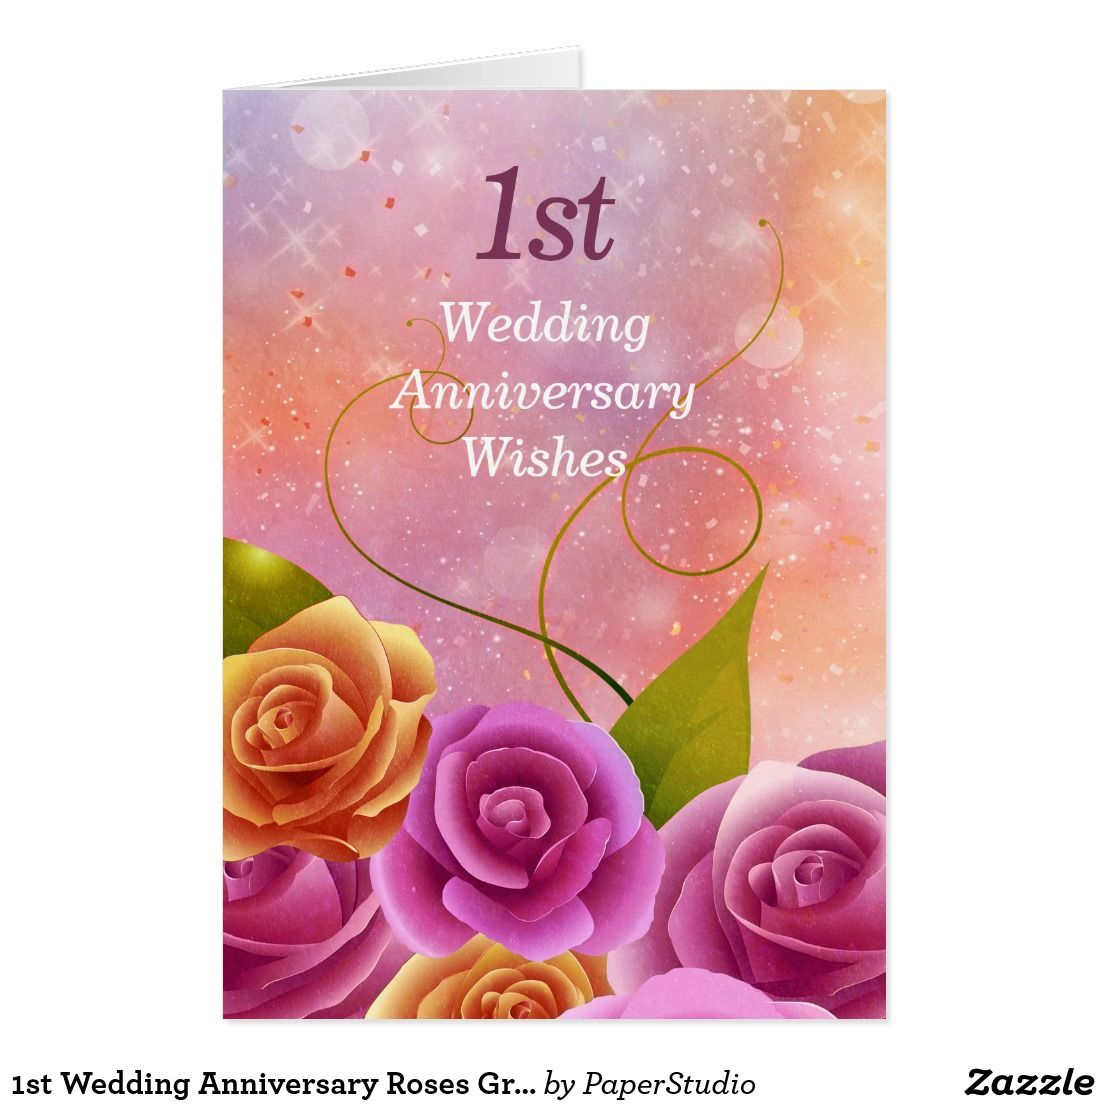 1st wedding anniversary roses greeting card pinterest wedding 1st wedding anniversary roses greeting card m4hsunfo